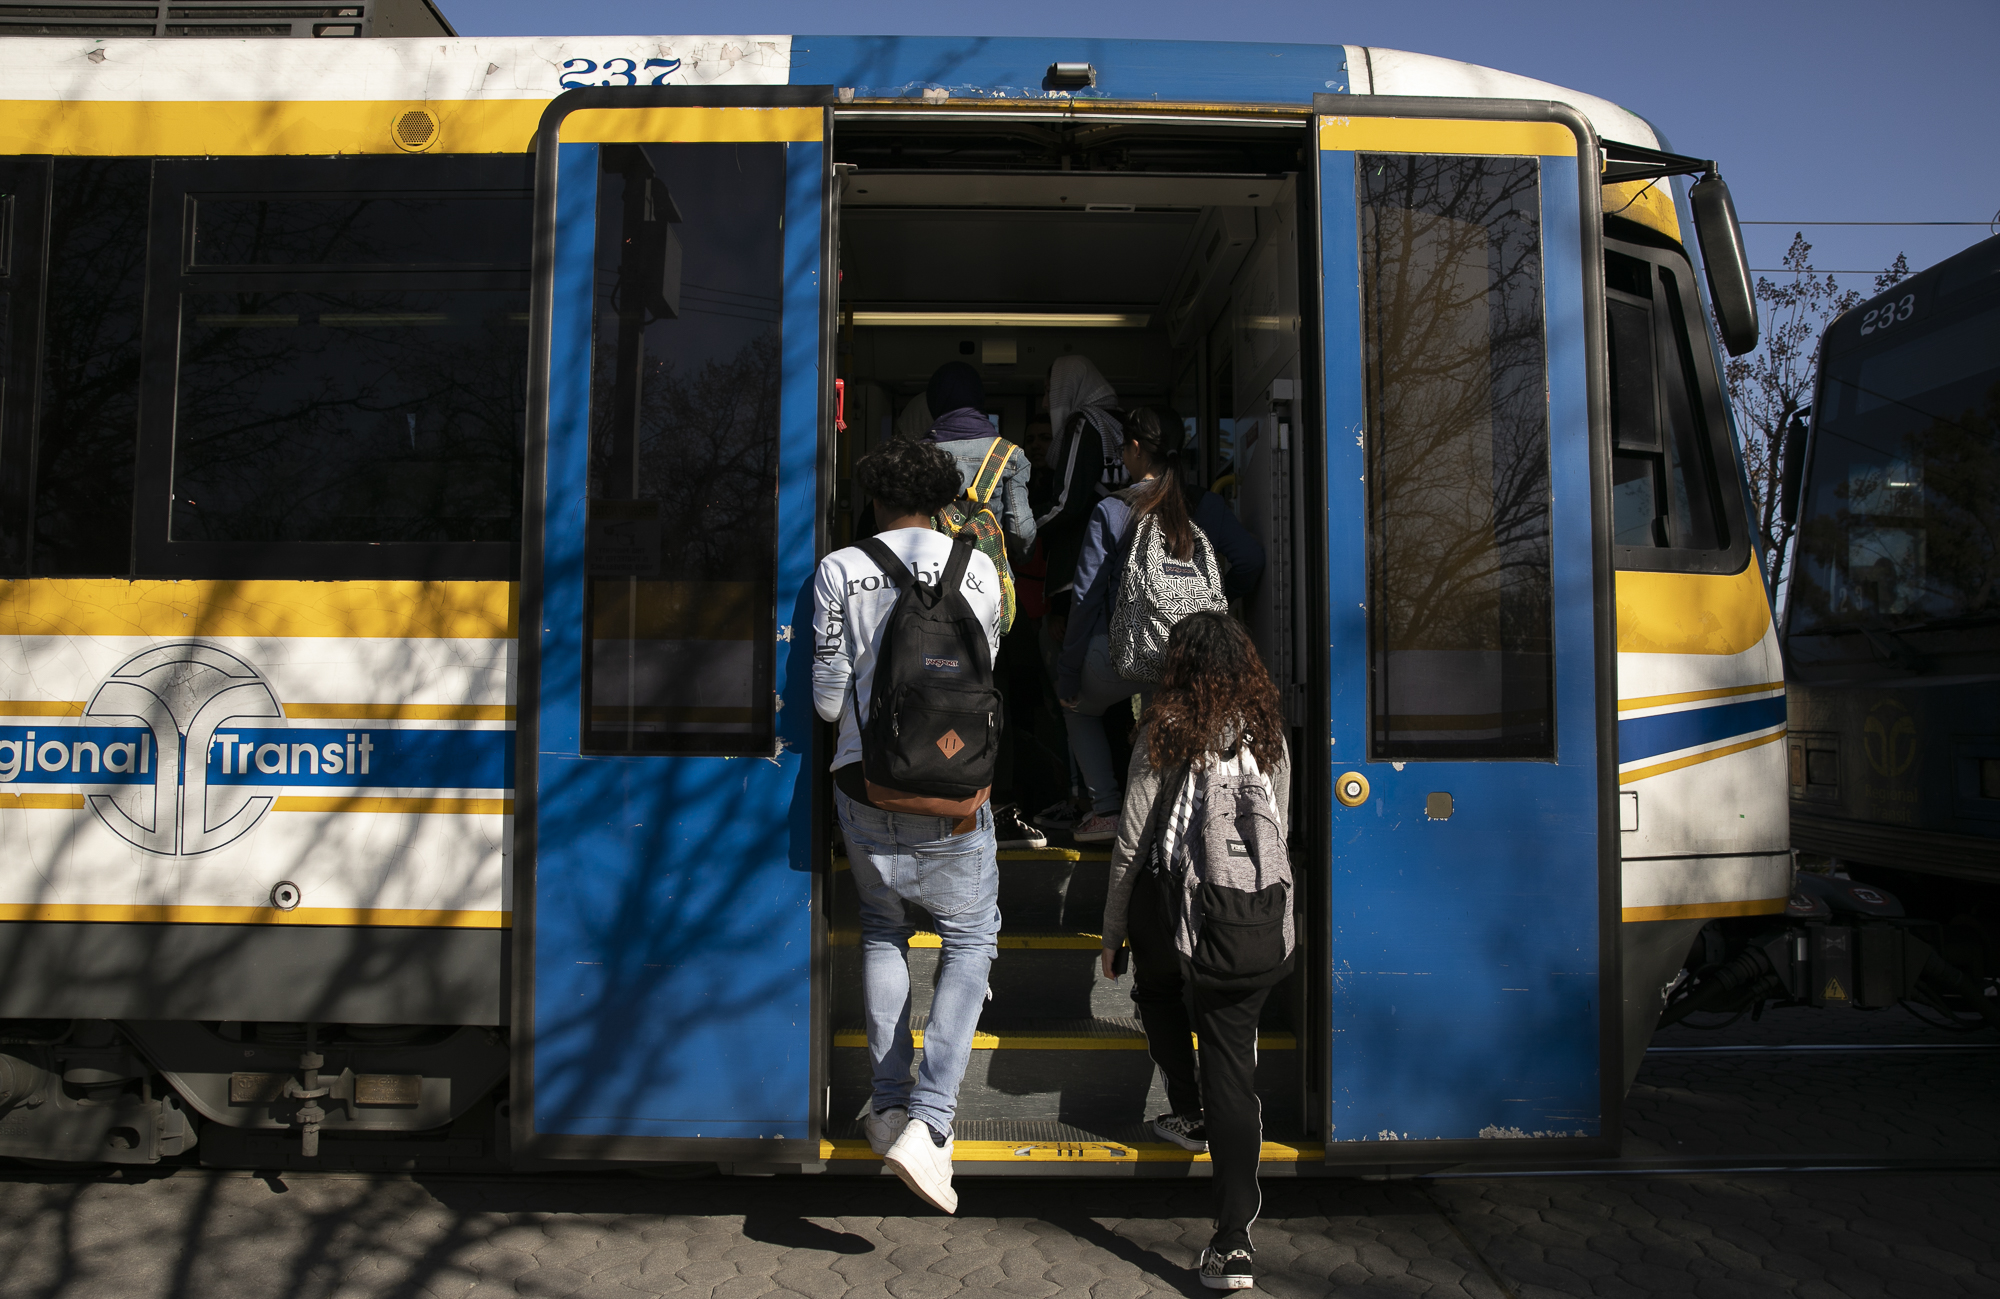 Local high school students catch the light rail at the end of the day in Sacramento. Photo by Anne Wernikoff for CalMatters